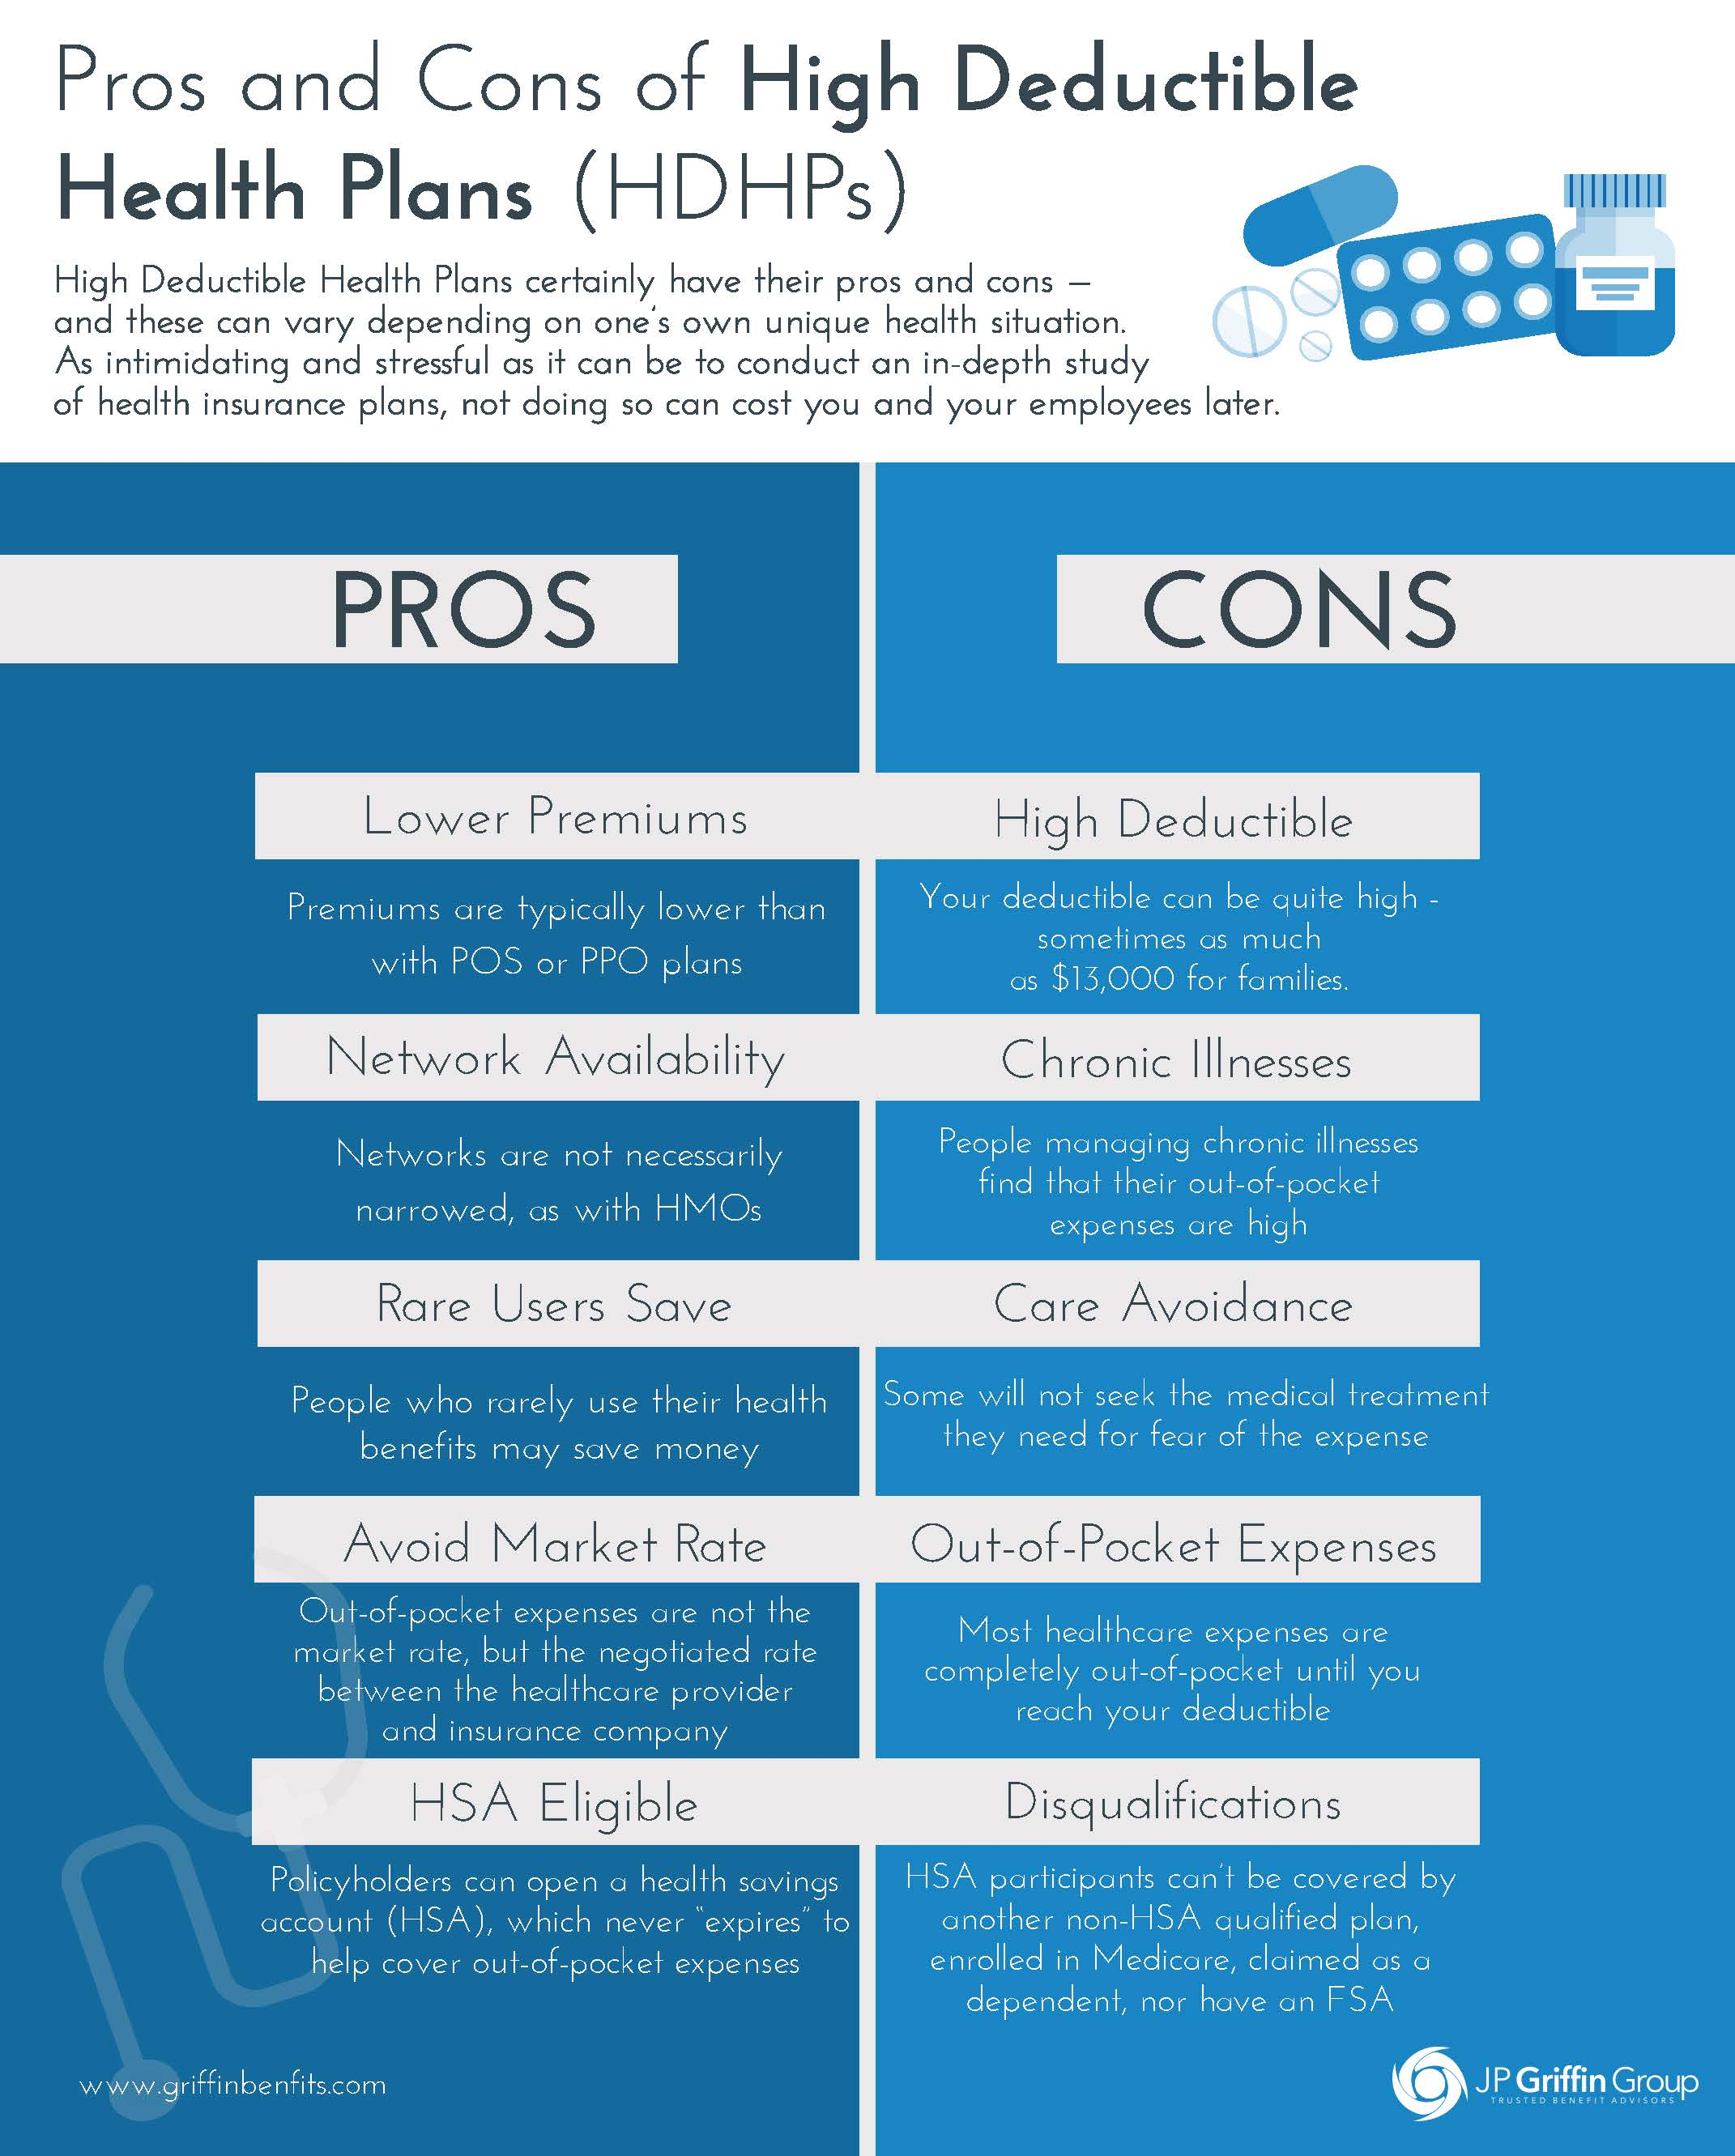 Infographic_Pro_and_Cons_of_High_Deductible_Health_Plans